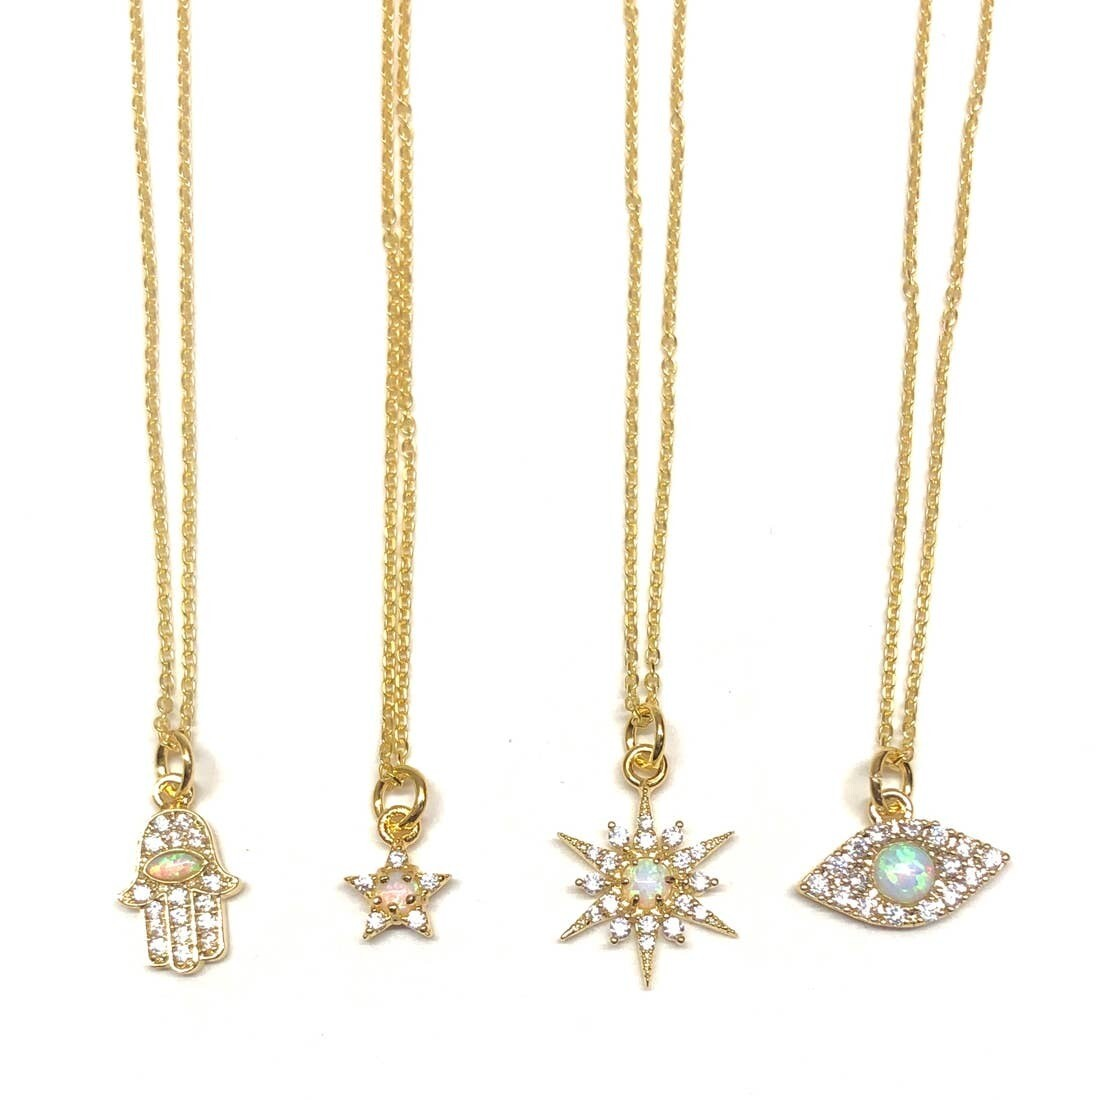 Golden Opal Charm Necklaces